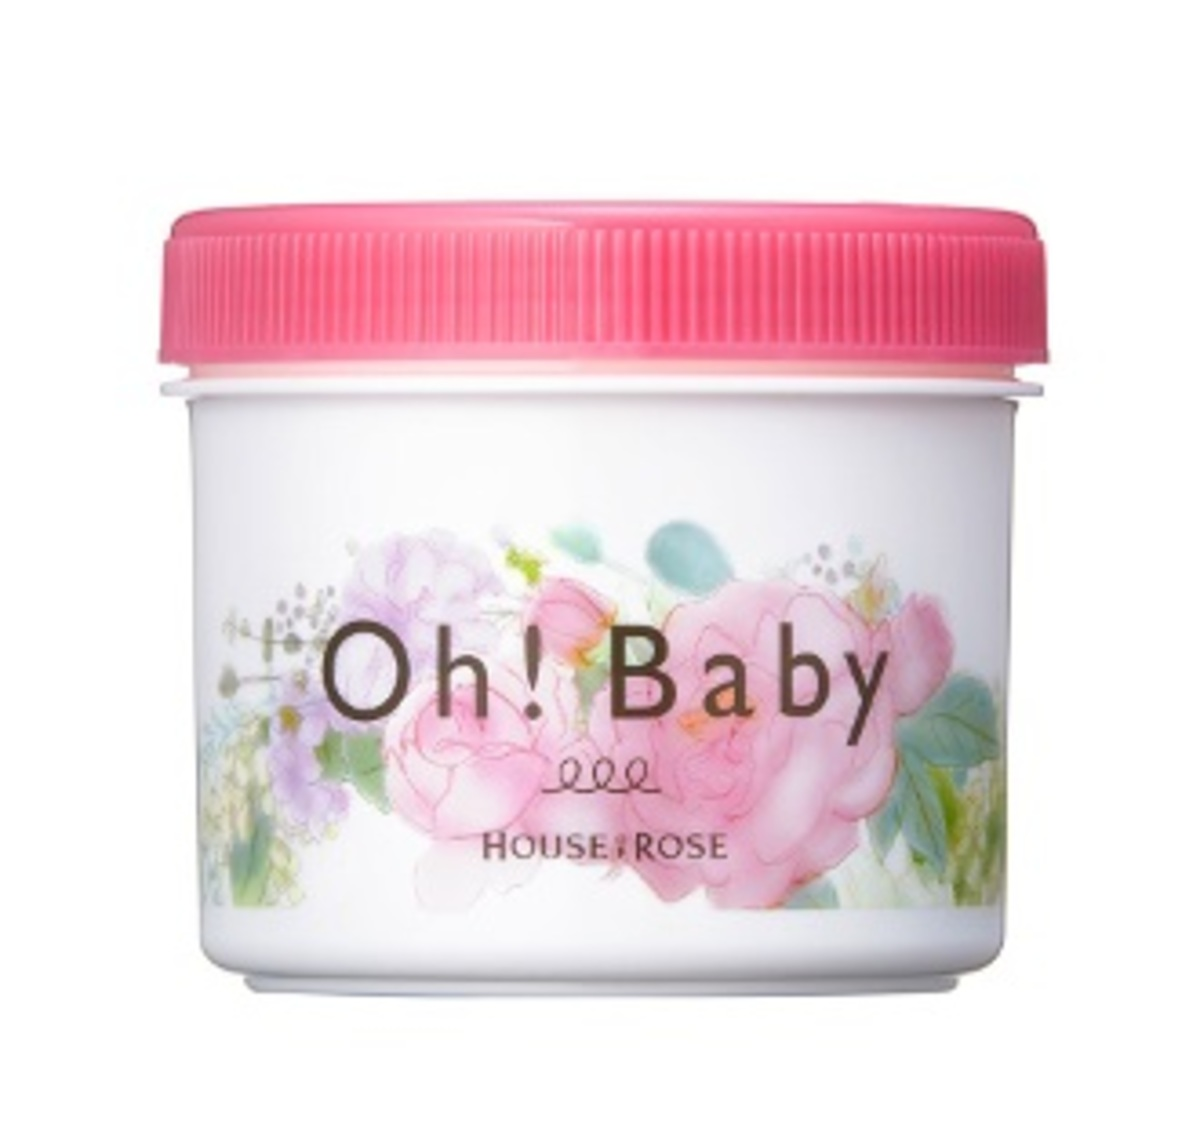 Oh! Baby Rose & Flower Body Smoother 350g